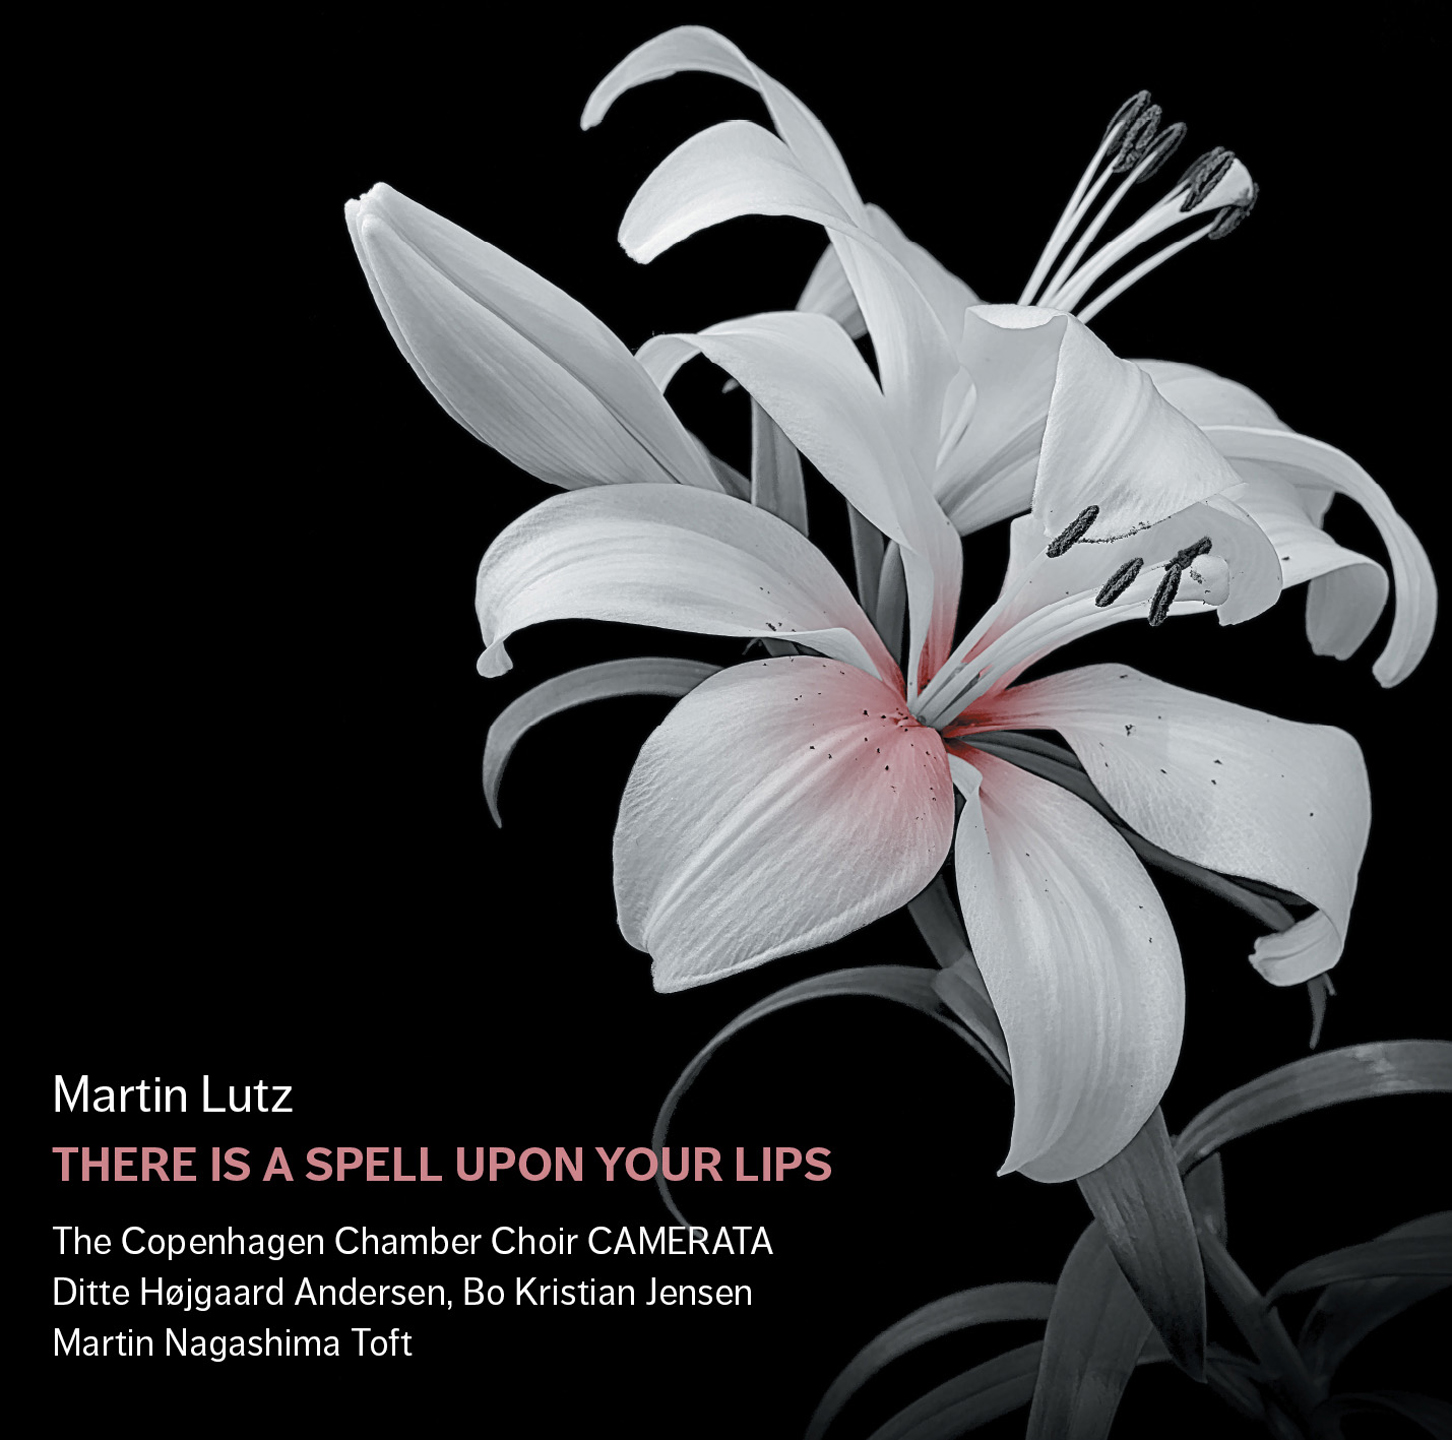 Martin Lutz: There Is a Spell upon Your Lips